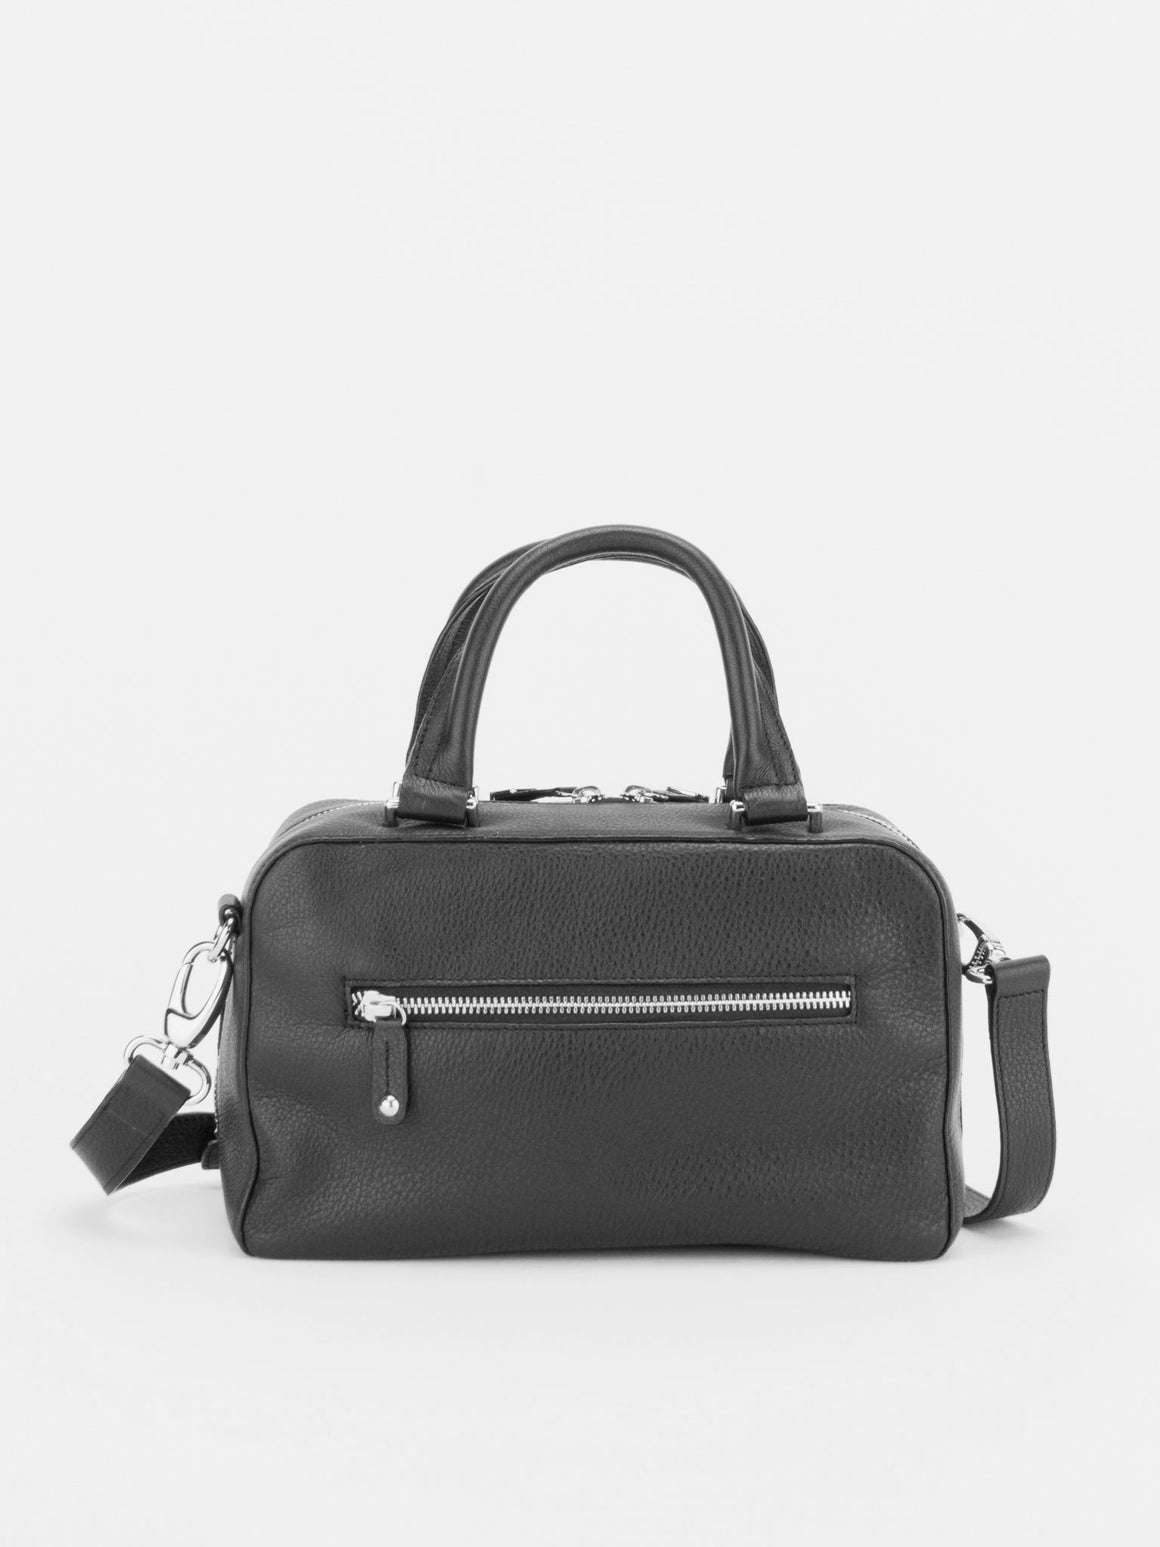 NATALIE Small Leather Boston Bag - Black